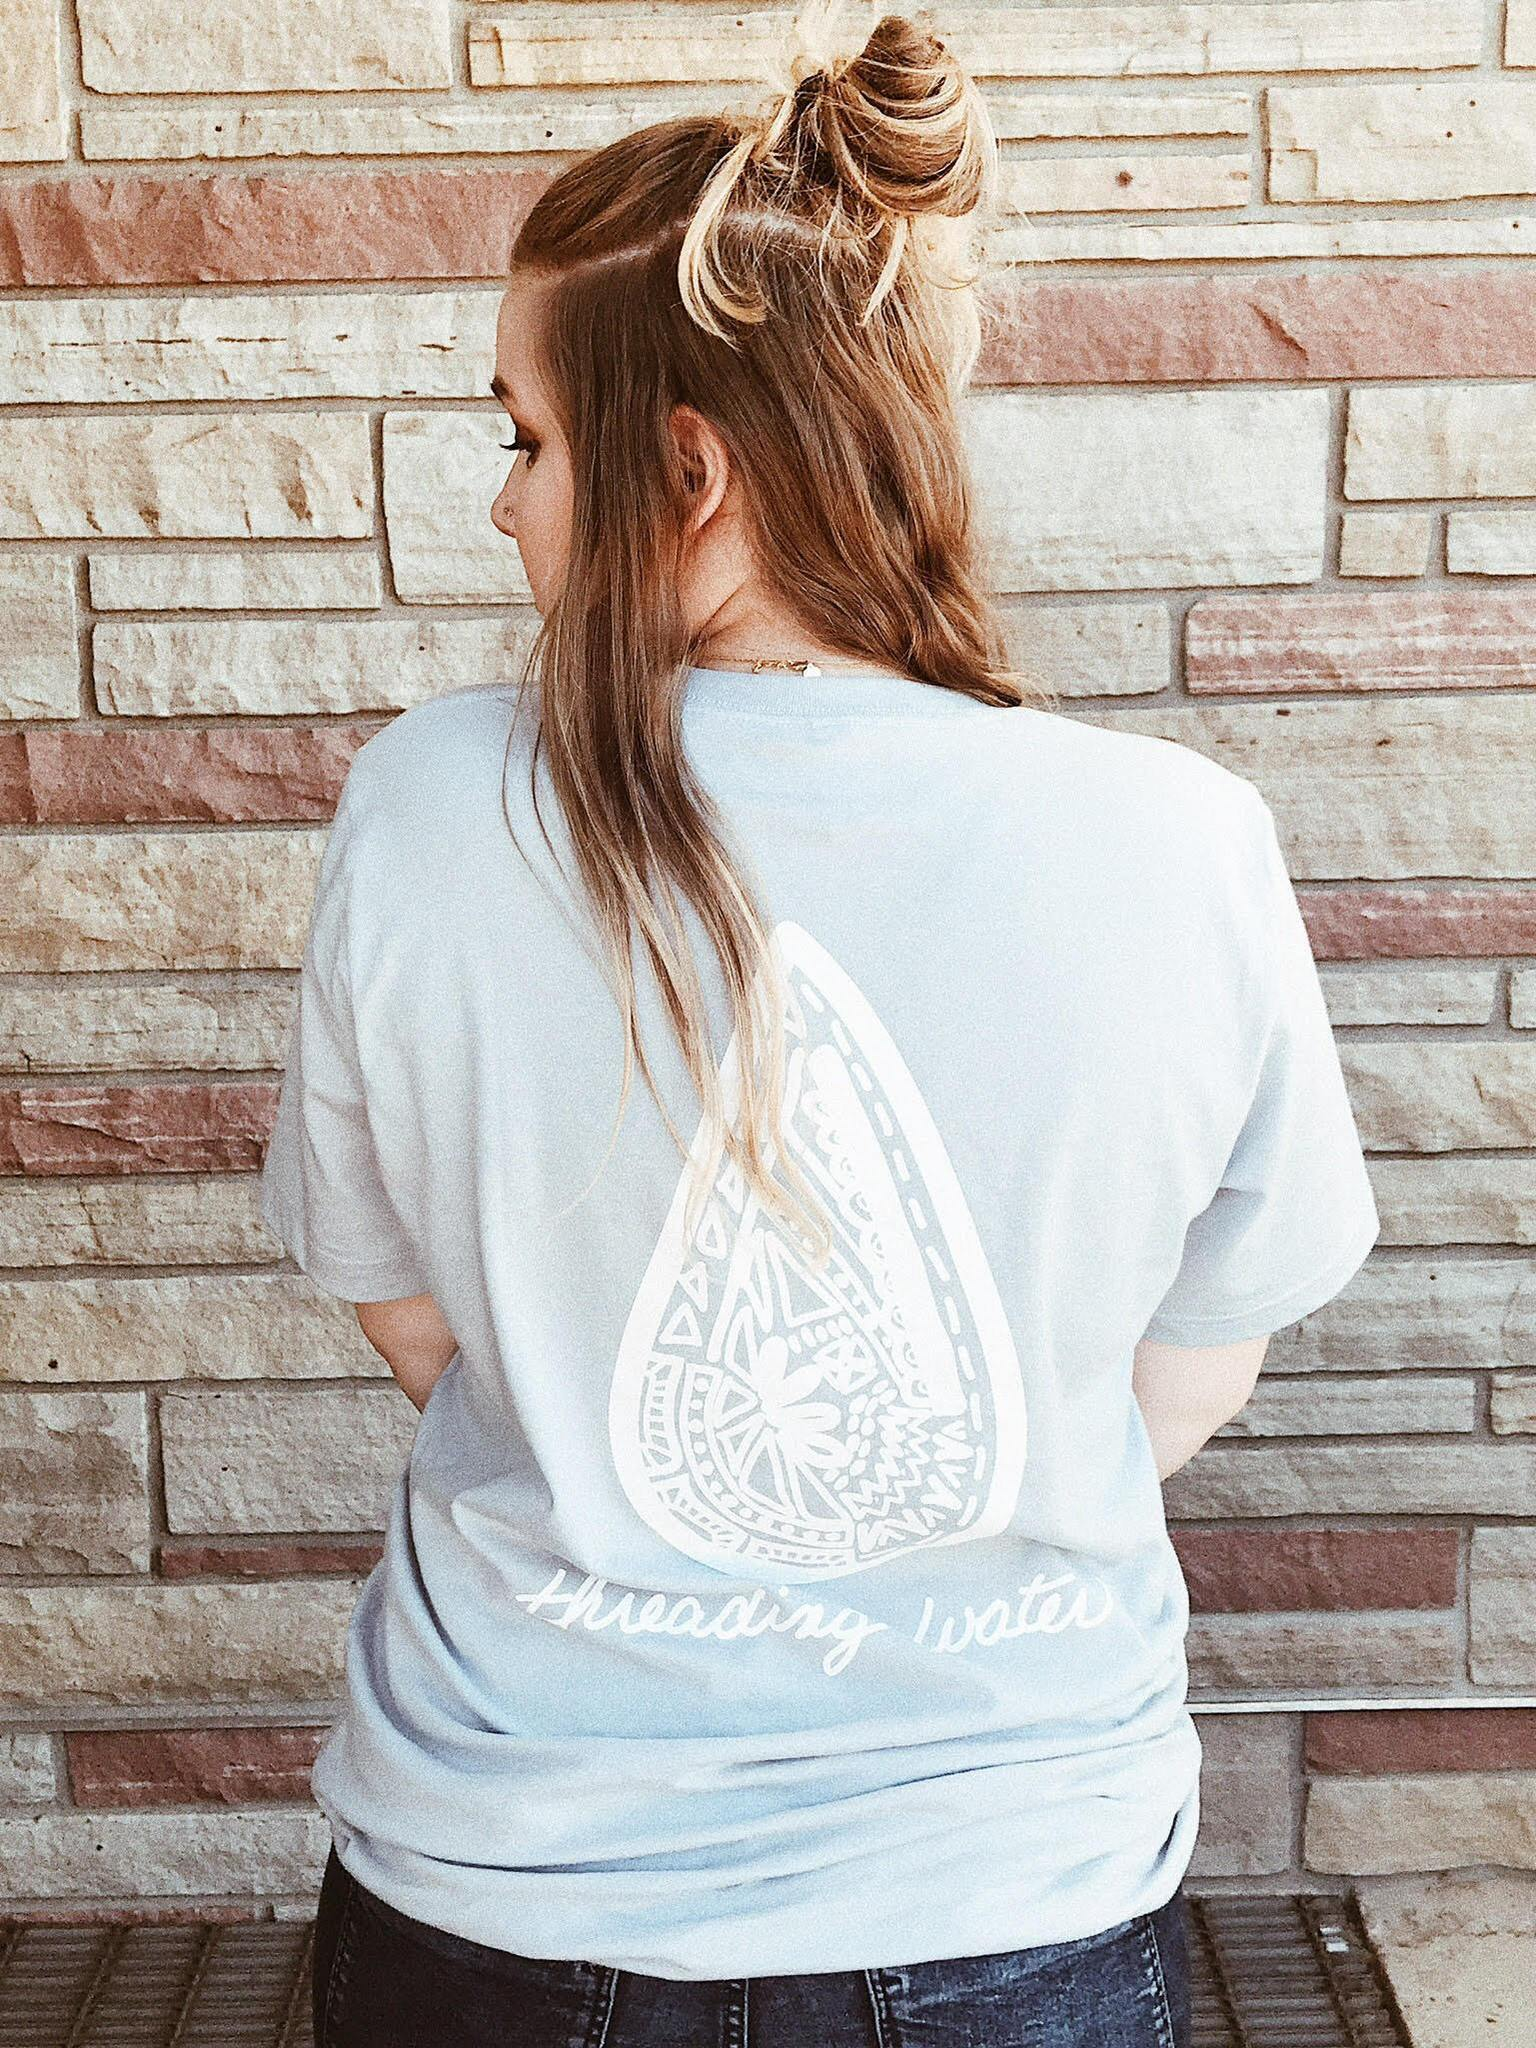 Mermaid Drop Tee